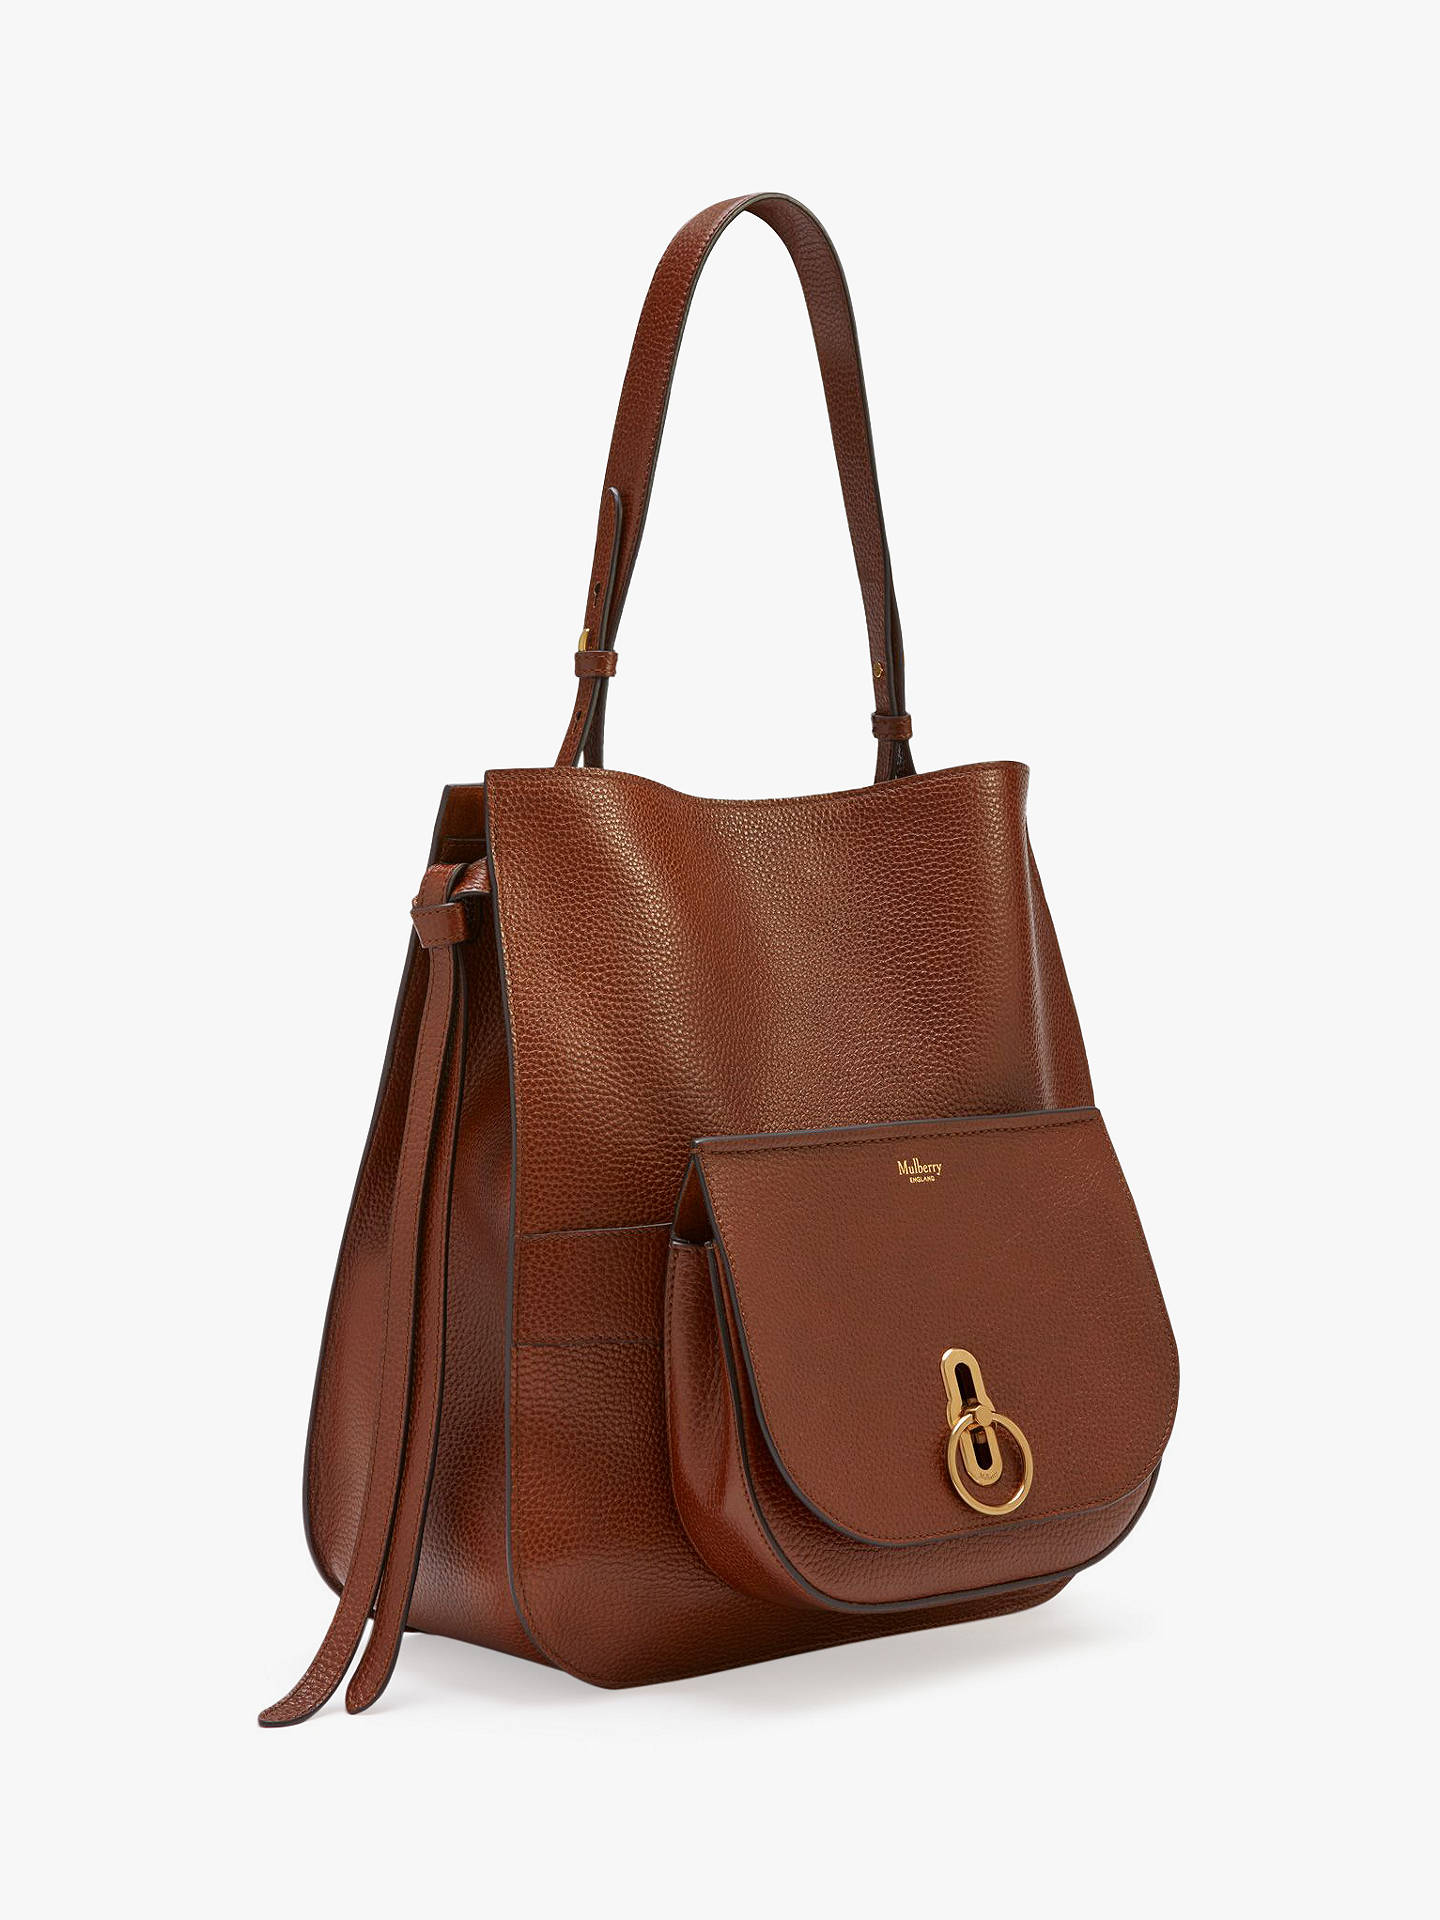 ... BuyMulberry Amberley Grain Veg Tanned Leather Hobo Bag e1792f83c2a3f